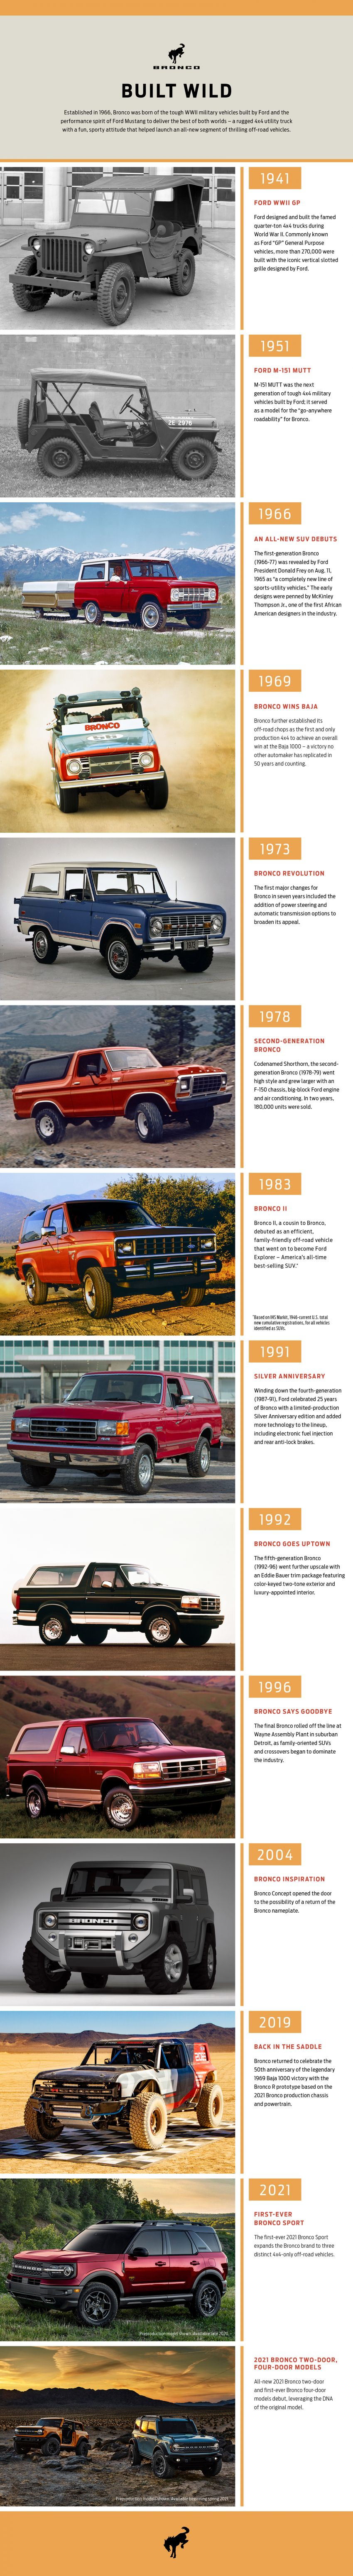 Sixth-generation Ford Bronco debuts – two EcoBoost petrols, removable panels and washable interior Image #1145094